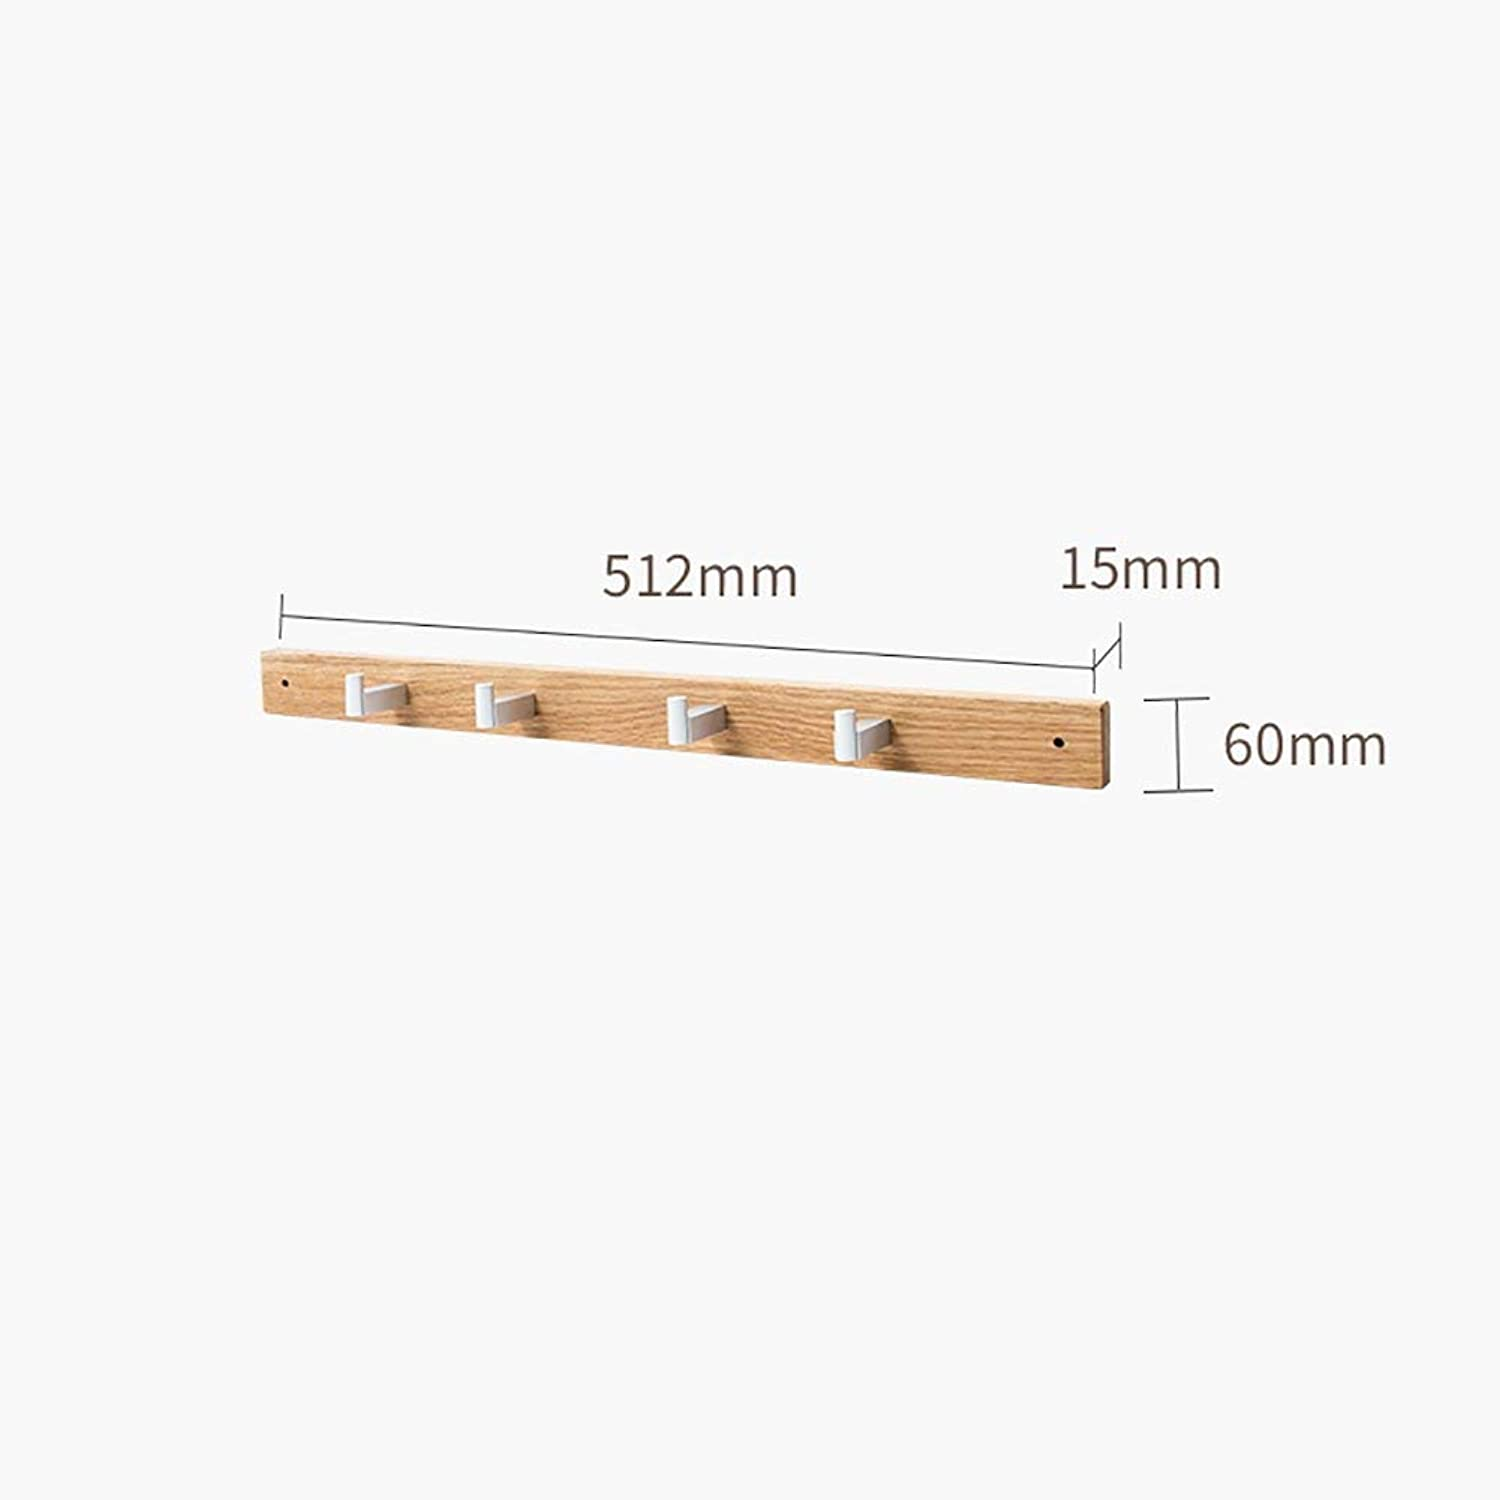 Shiyanghang Simple Hall Wall Solid Wood Coat Rack Wall-Mounted Racks Bedroom Living Room Simple Hanger Porch Hanger (Size   A)